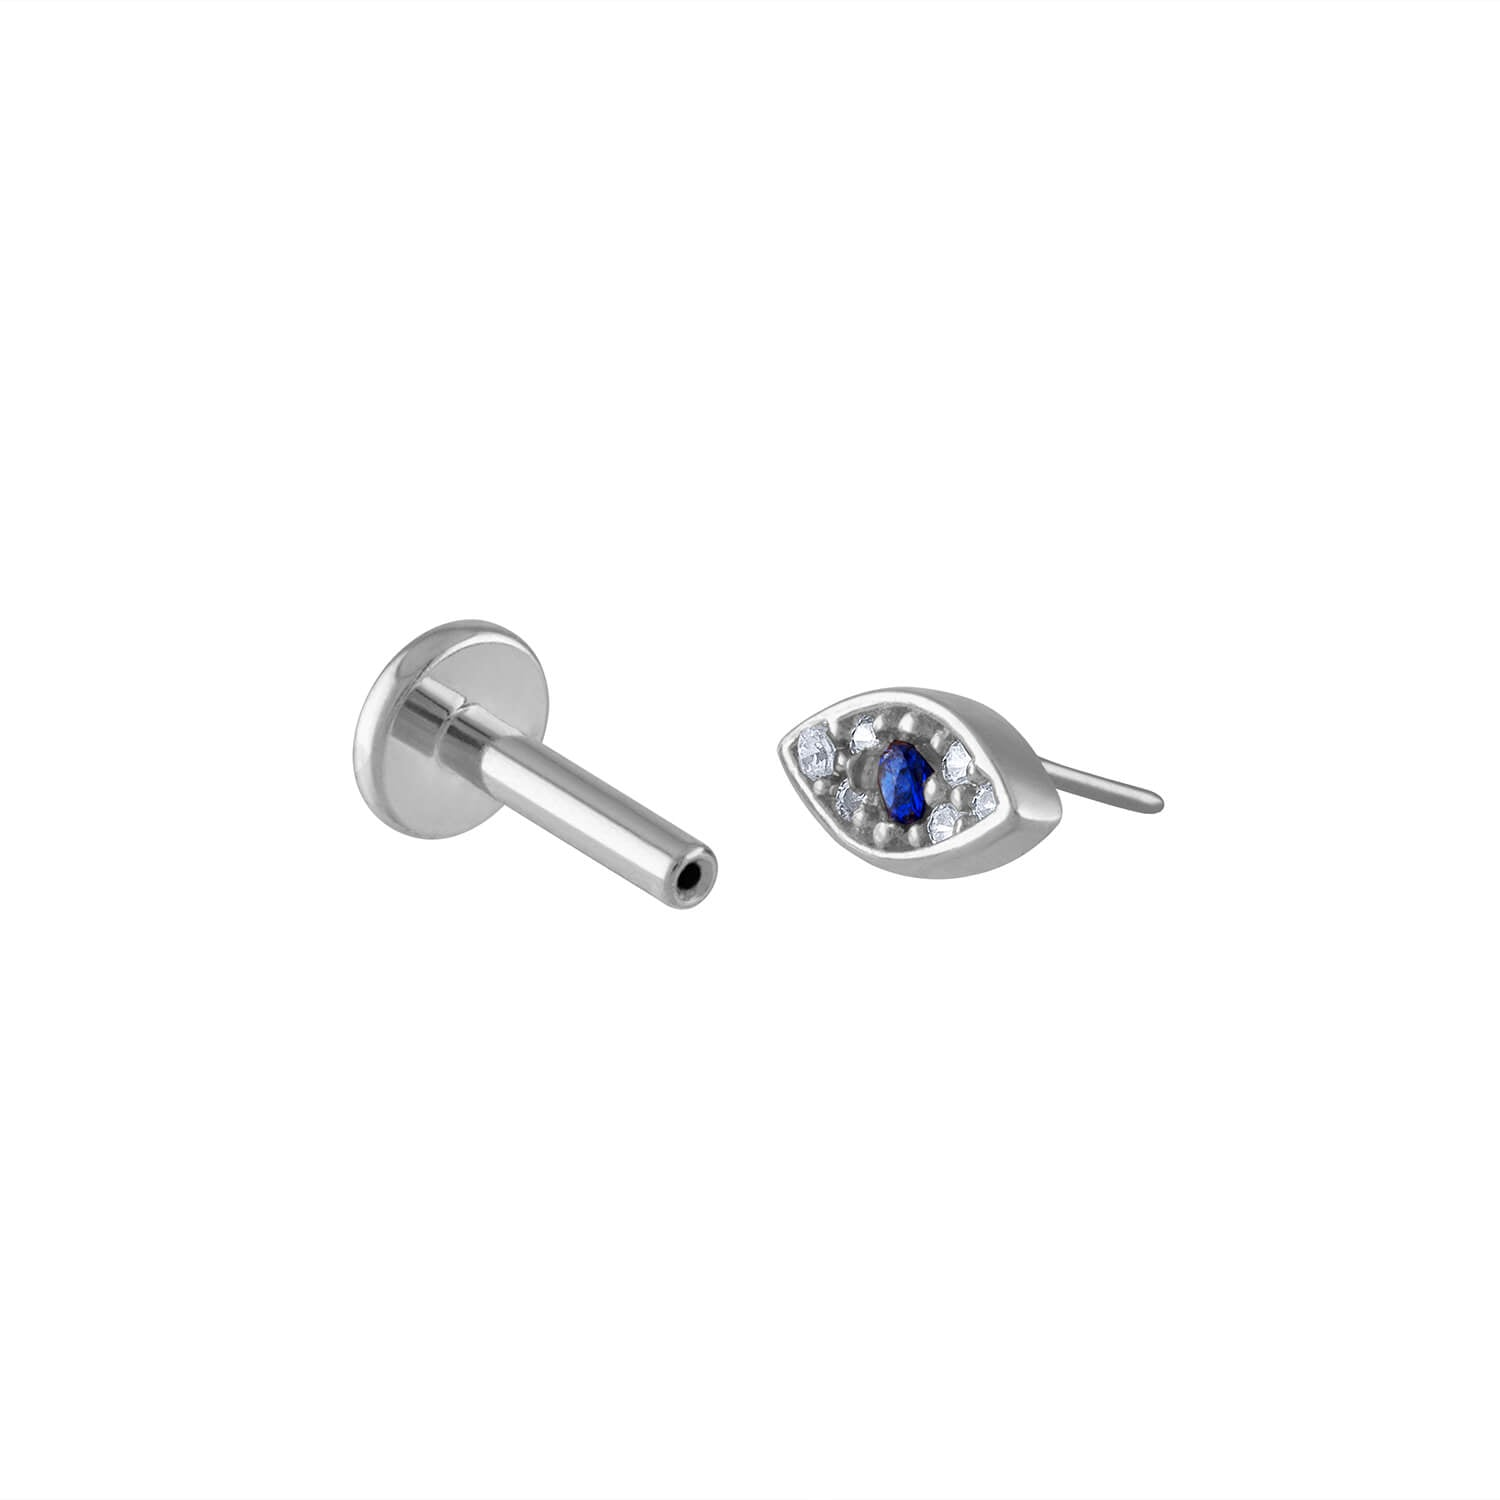 Evil Eye Push Pin Flat Back Earring in Silver